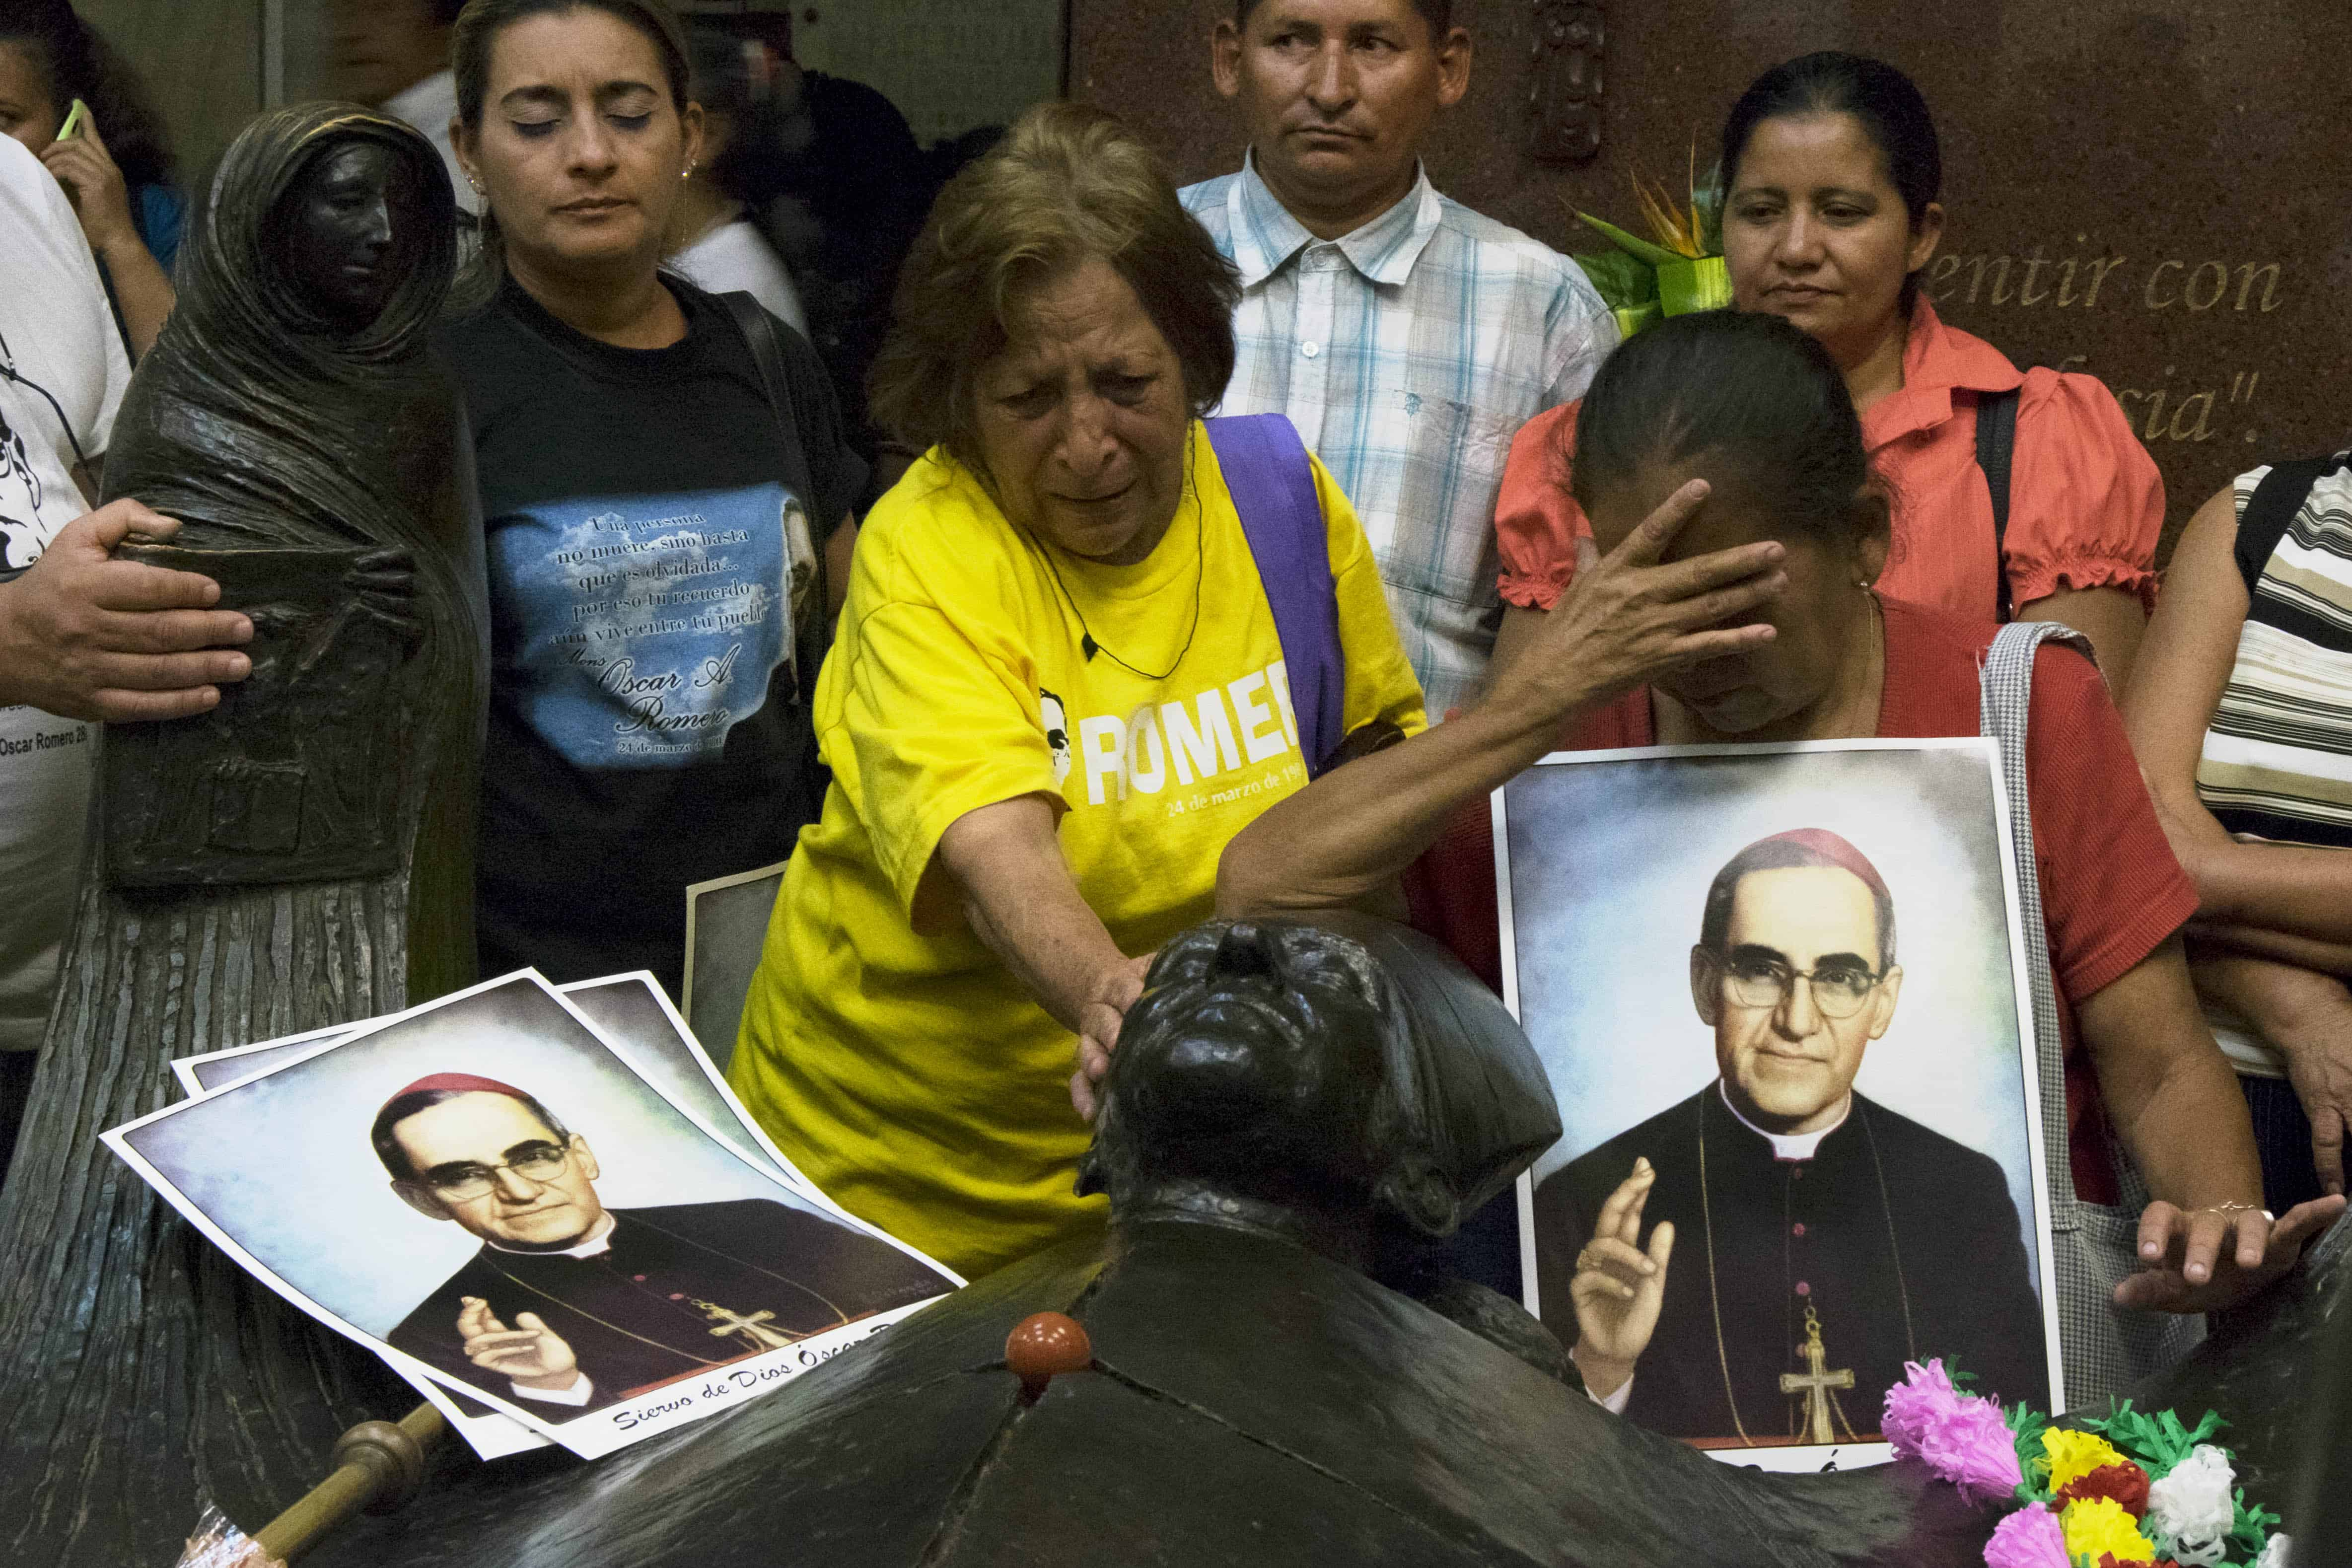 Luz Gloria Levas (in yellow), 72, cries at the tomb of Archbishop Oscar Romero in San Salvador, March 24, 2015.